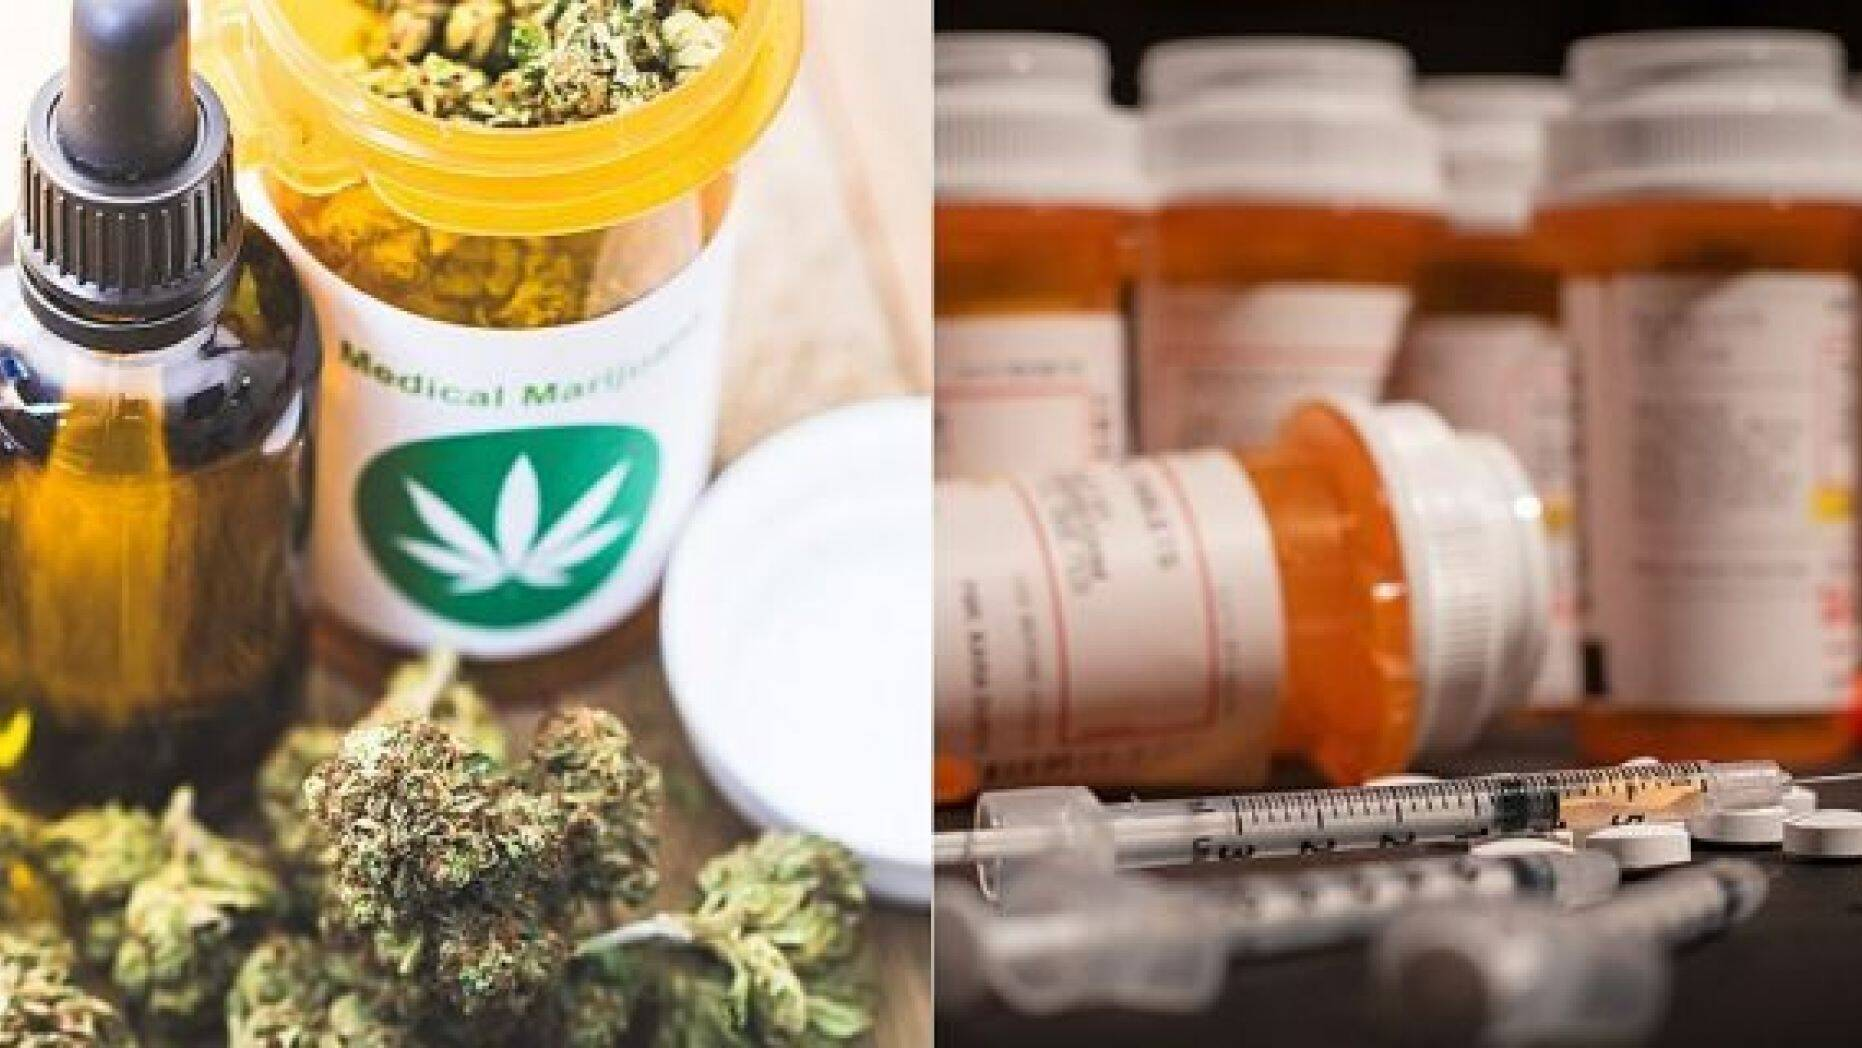 Colorado signed a bill on Thursday which will allow doctors to recommend medical marijuana to treat conditions they've previously used painkillers for.